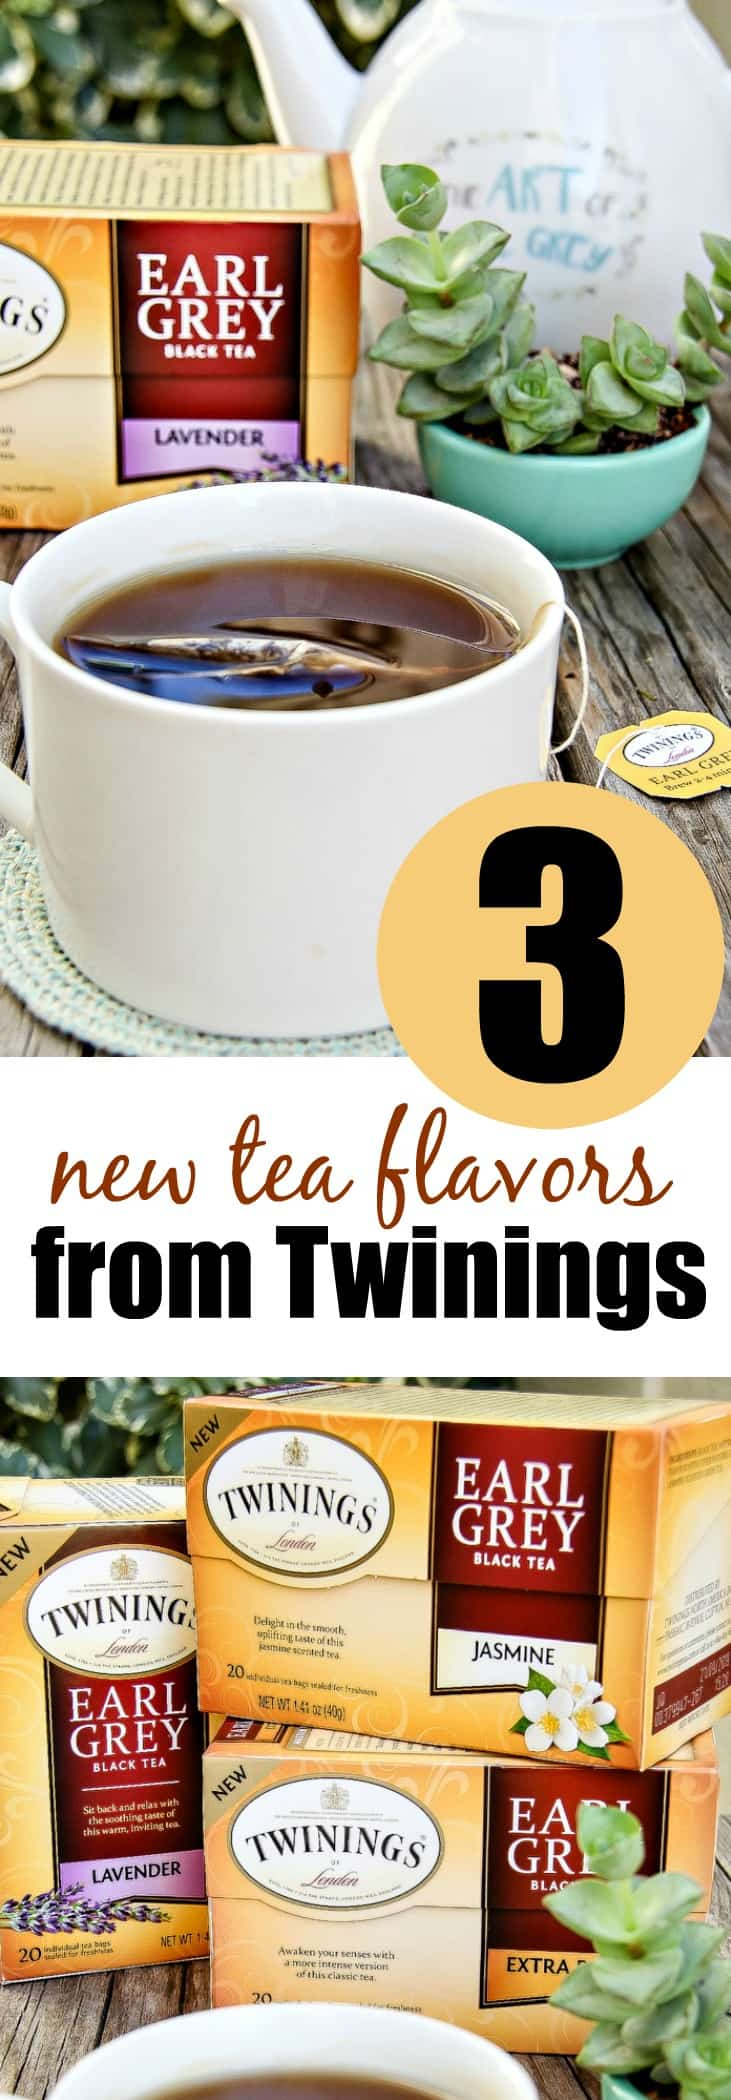 Enjoy the 3 new Earl Grey tea flavors from Twinings including Jasmine, Lavender, and Extra Bold